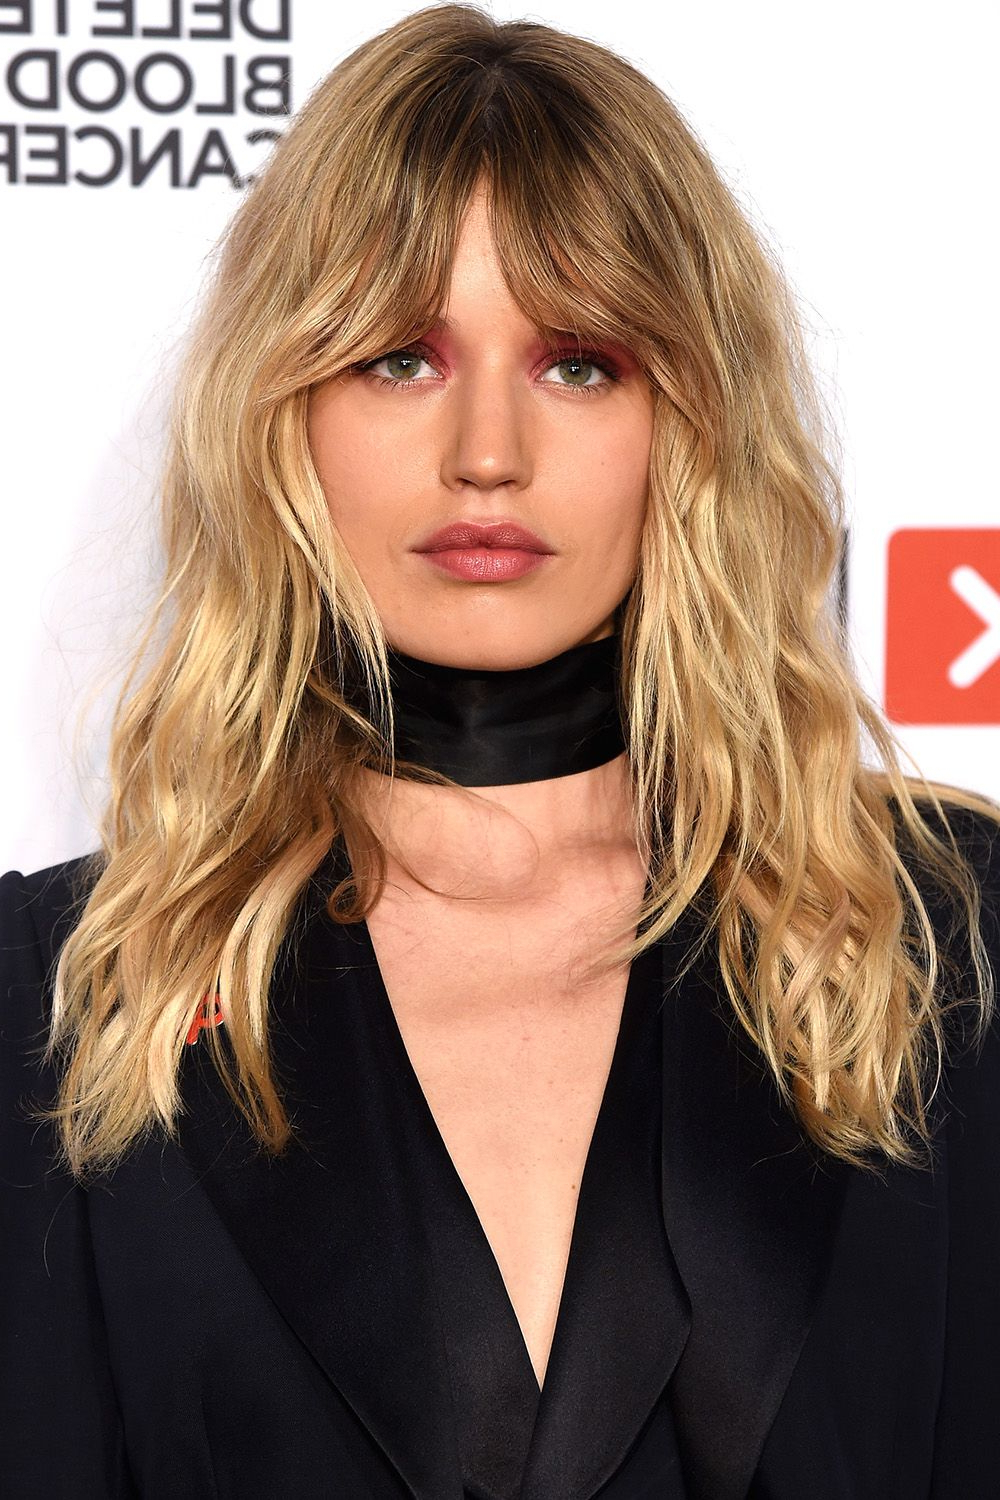 40 Best Medium Hairstyles – Celebrities With Shoulder Length Haircuts With Most Recent Long Face Medium Hairstyles (View 18 of 20)